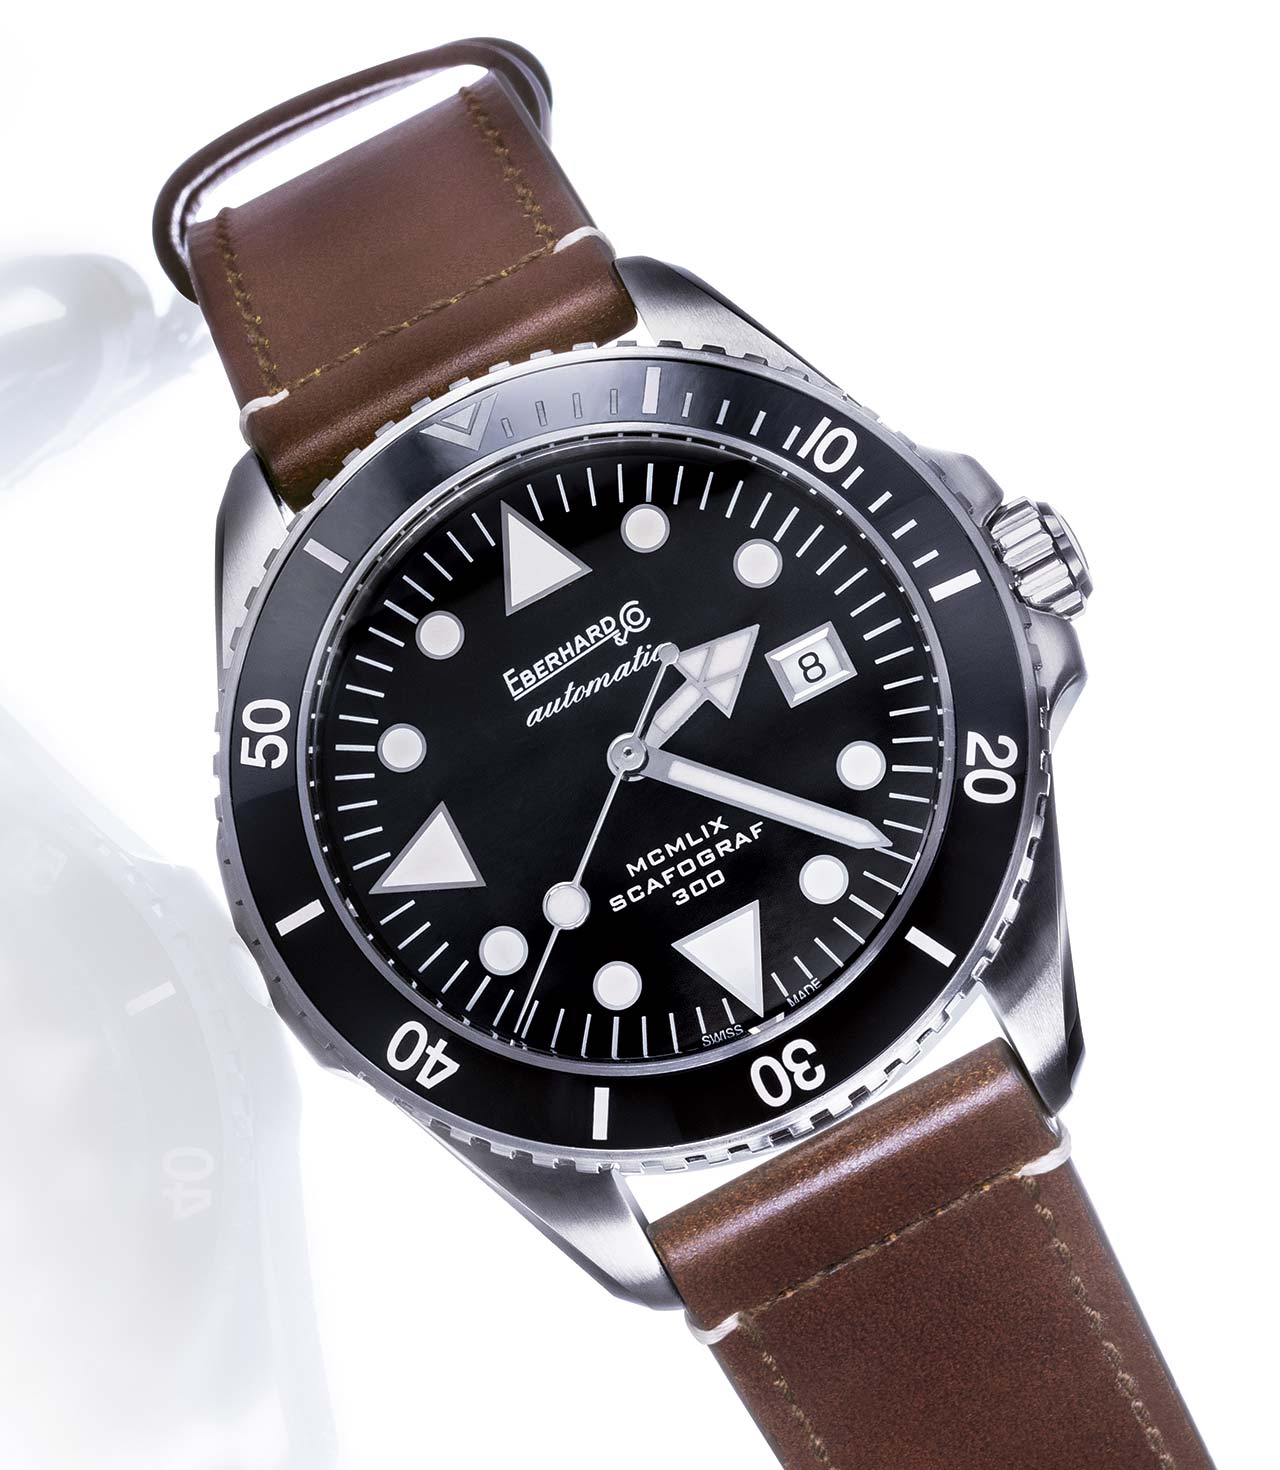 """Eberhard - Scafograf 300 """"MCMLIX"""" Edition 